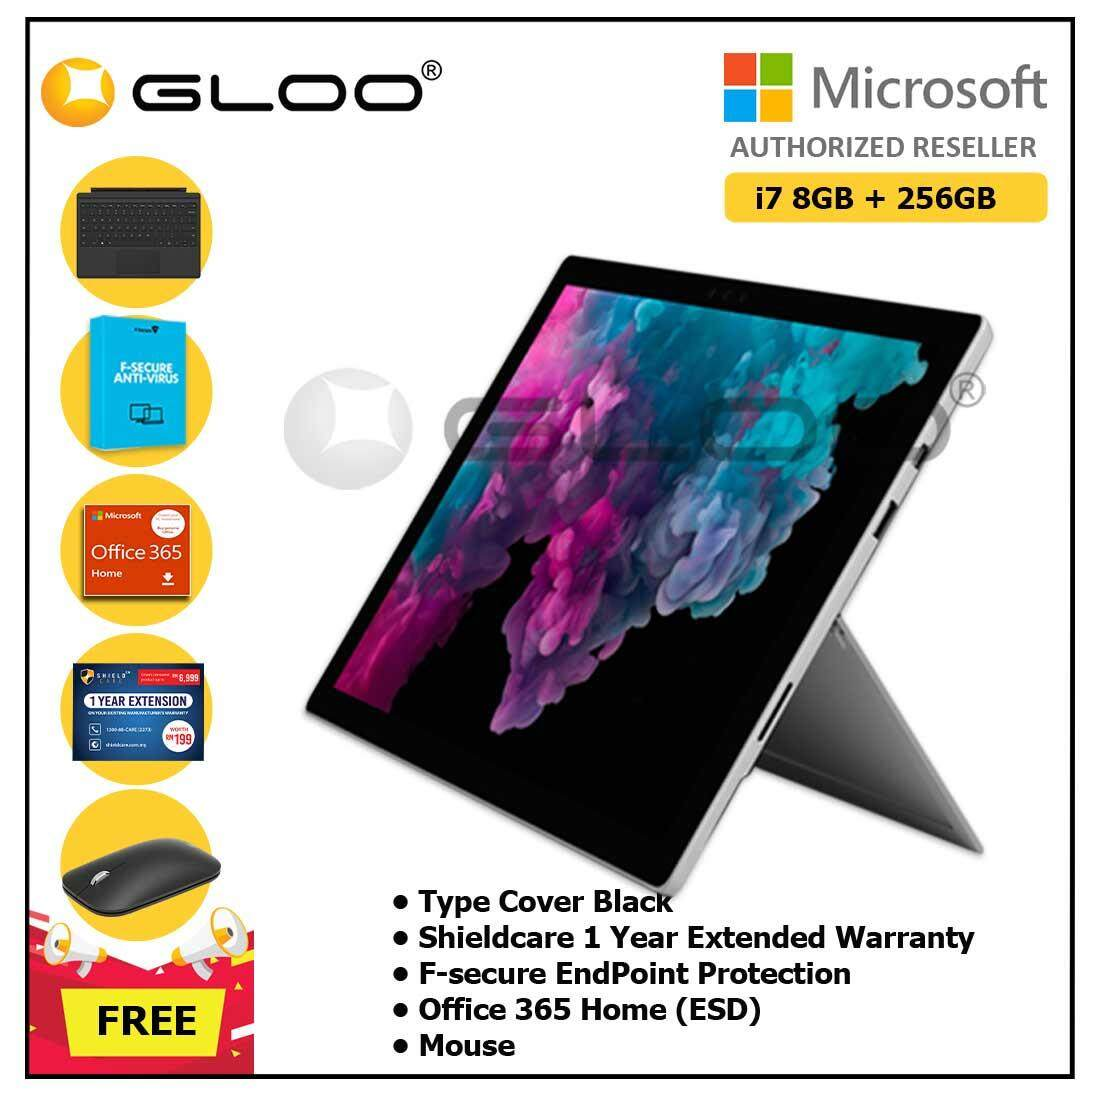 Microsoft Surface Pro 6 Core i7/8GB RAM - 256GB + Type Cover Black + Office 365 Home (ESD) + Shieldcare 1 Year Extended Warranty + F-Secure Endpoint Protection + Mouse